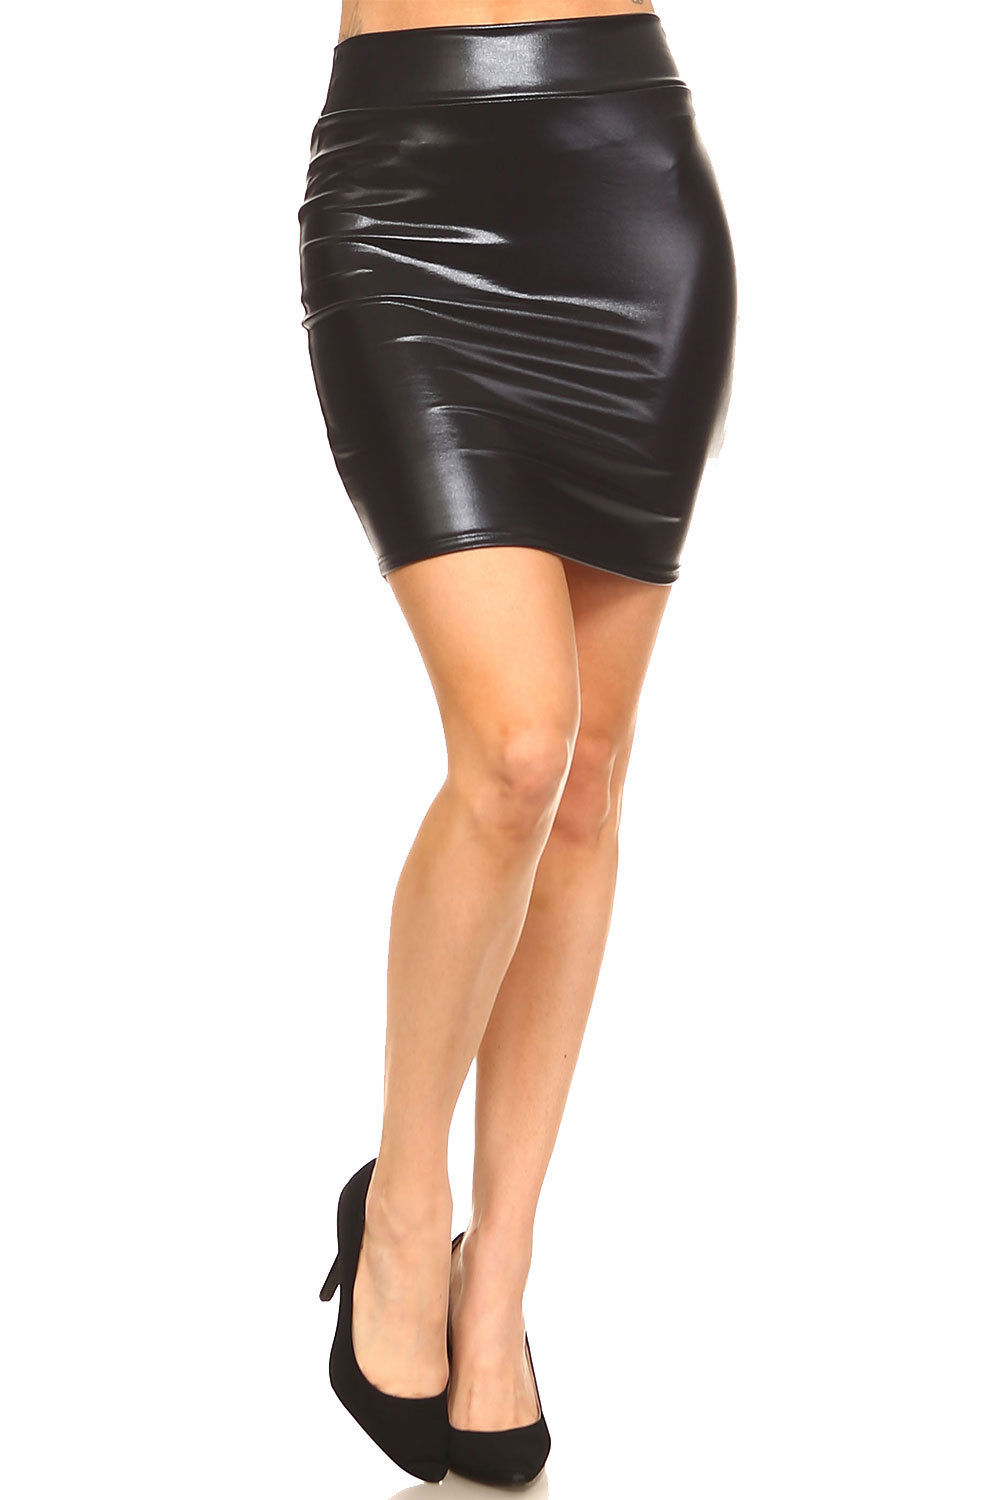 469d023db Black Leather Bodycon Mini Skirt | Saddha